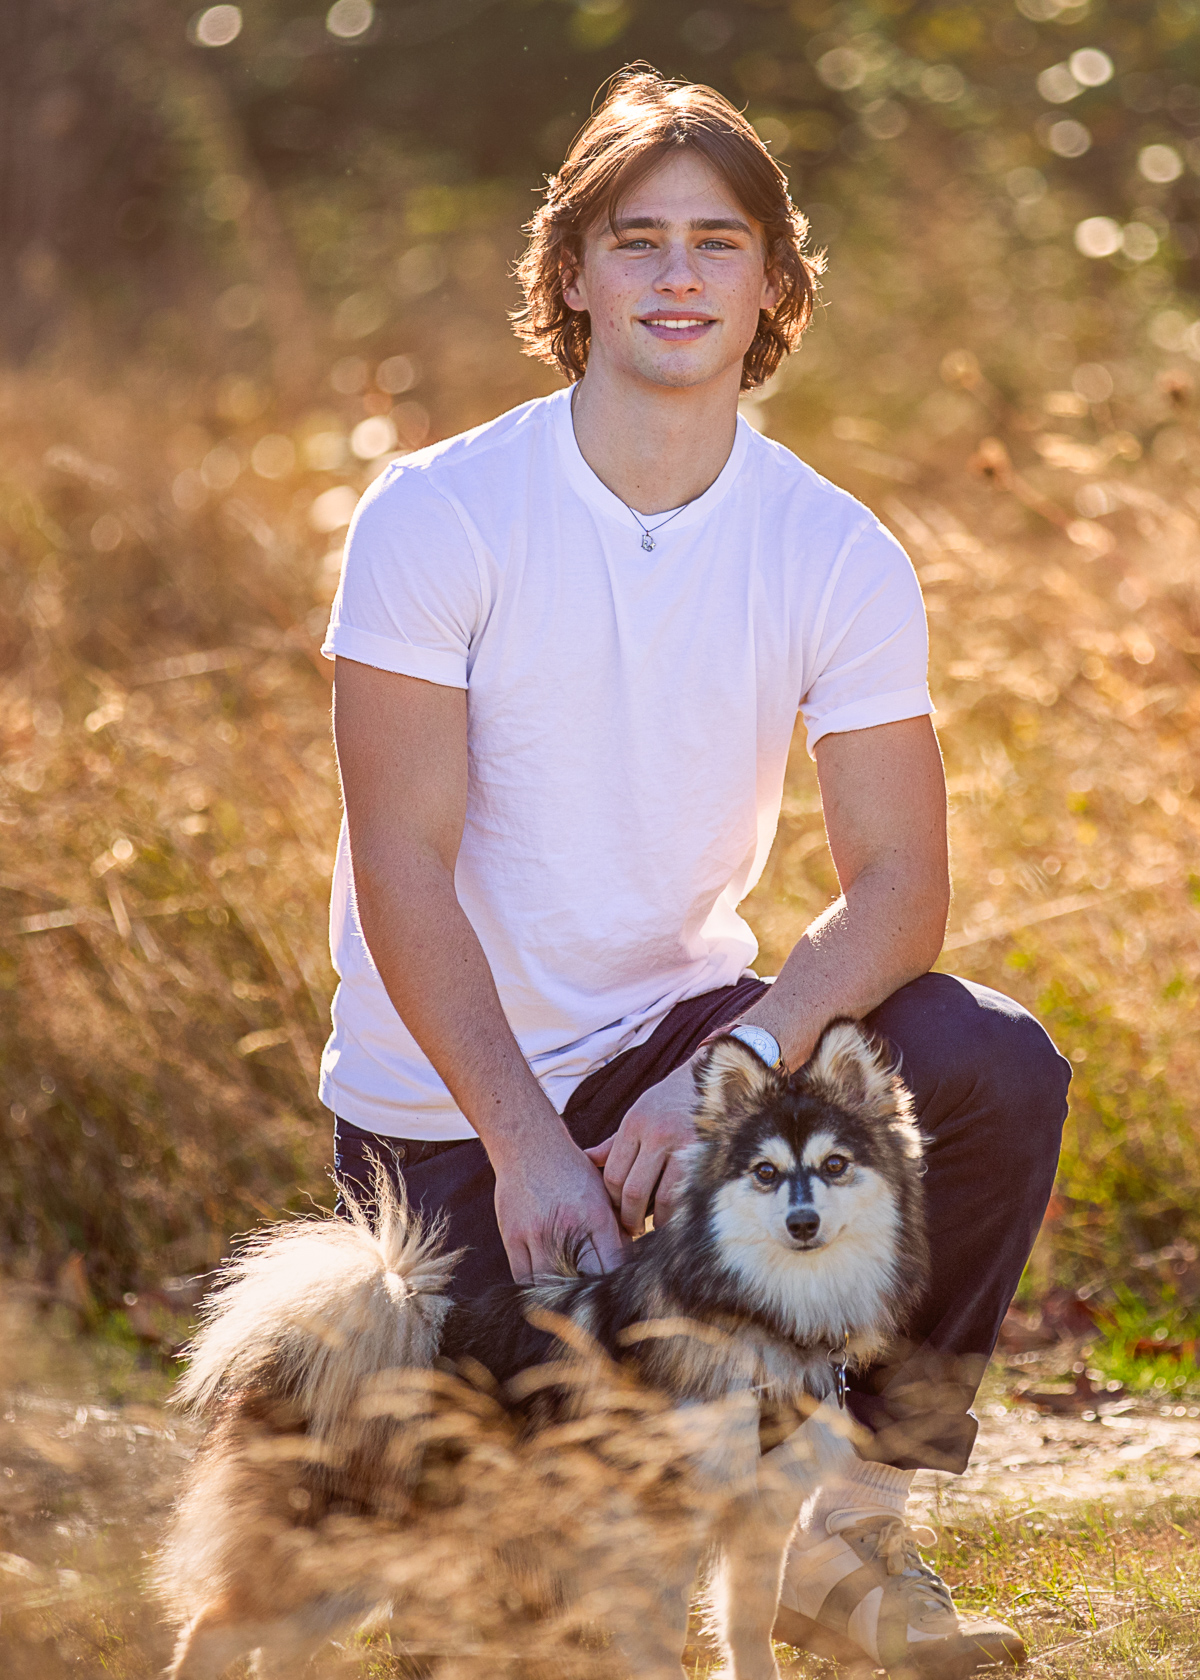 Senior Pictures, boy and his dog